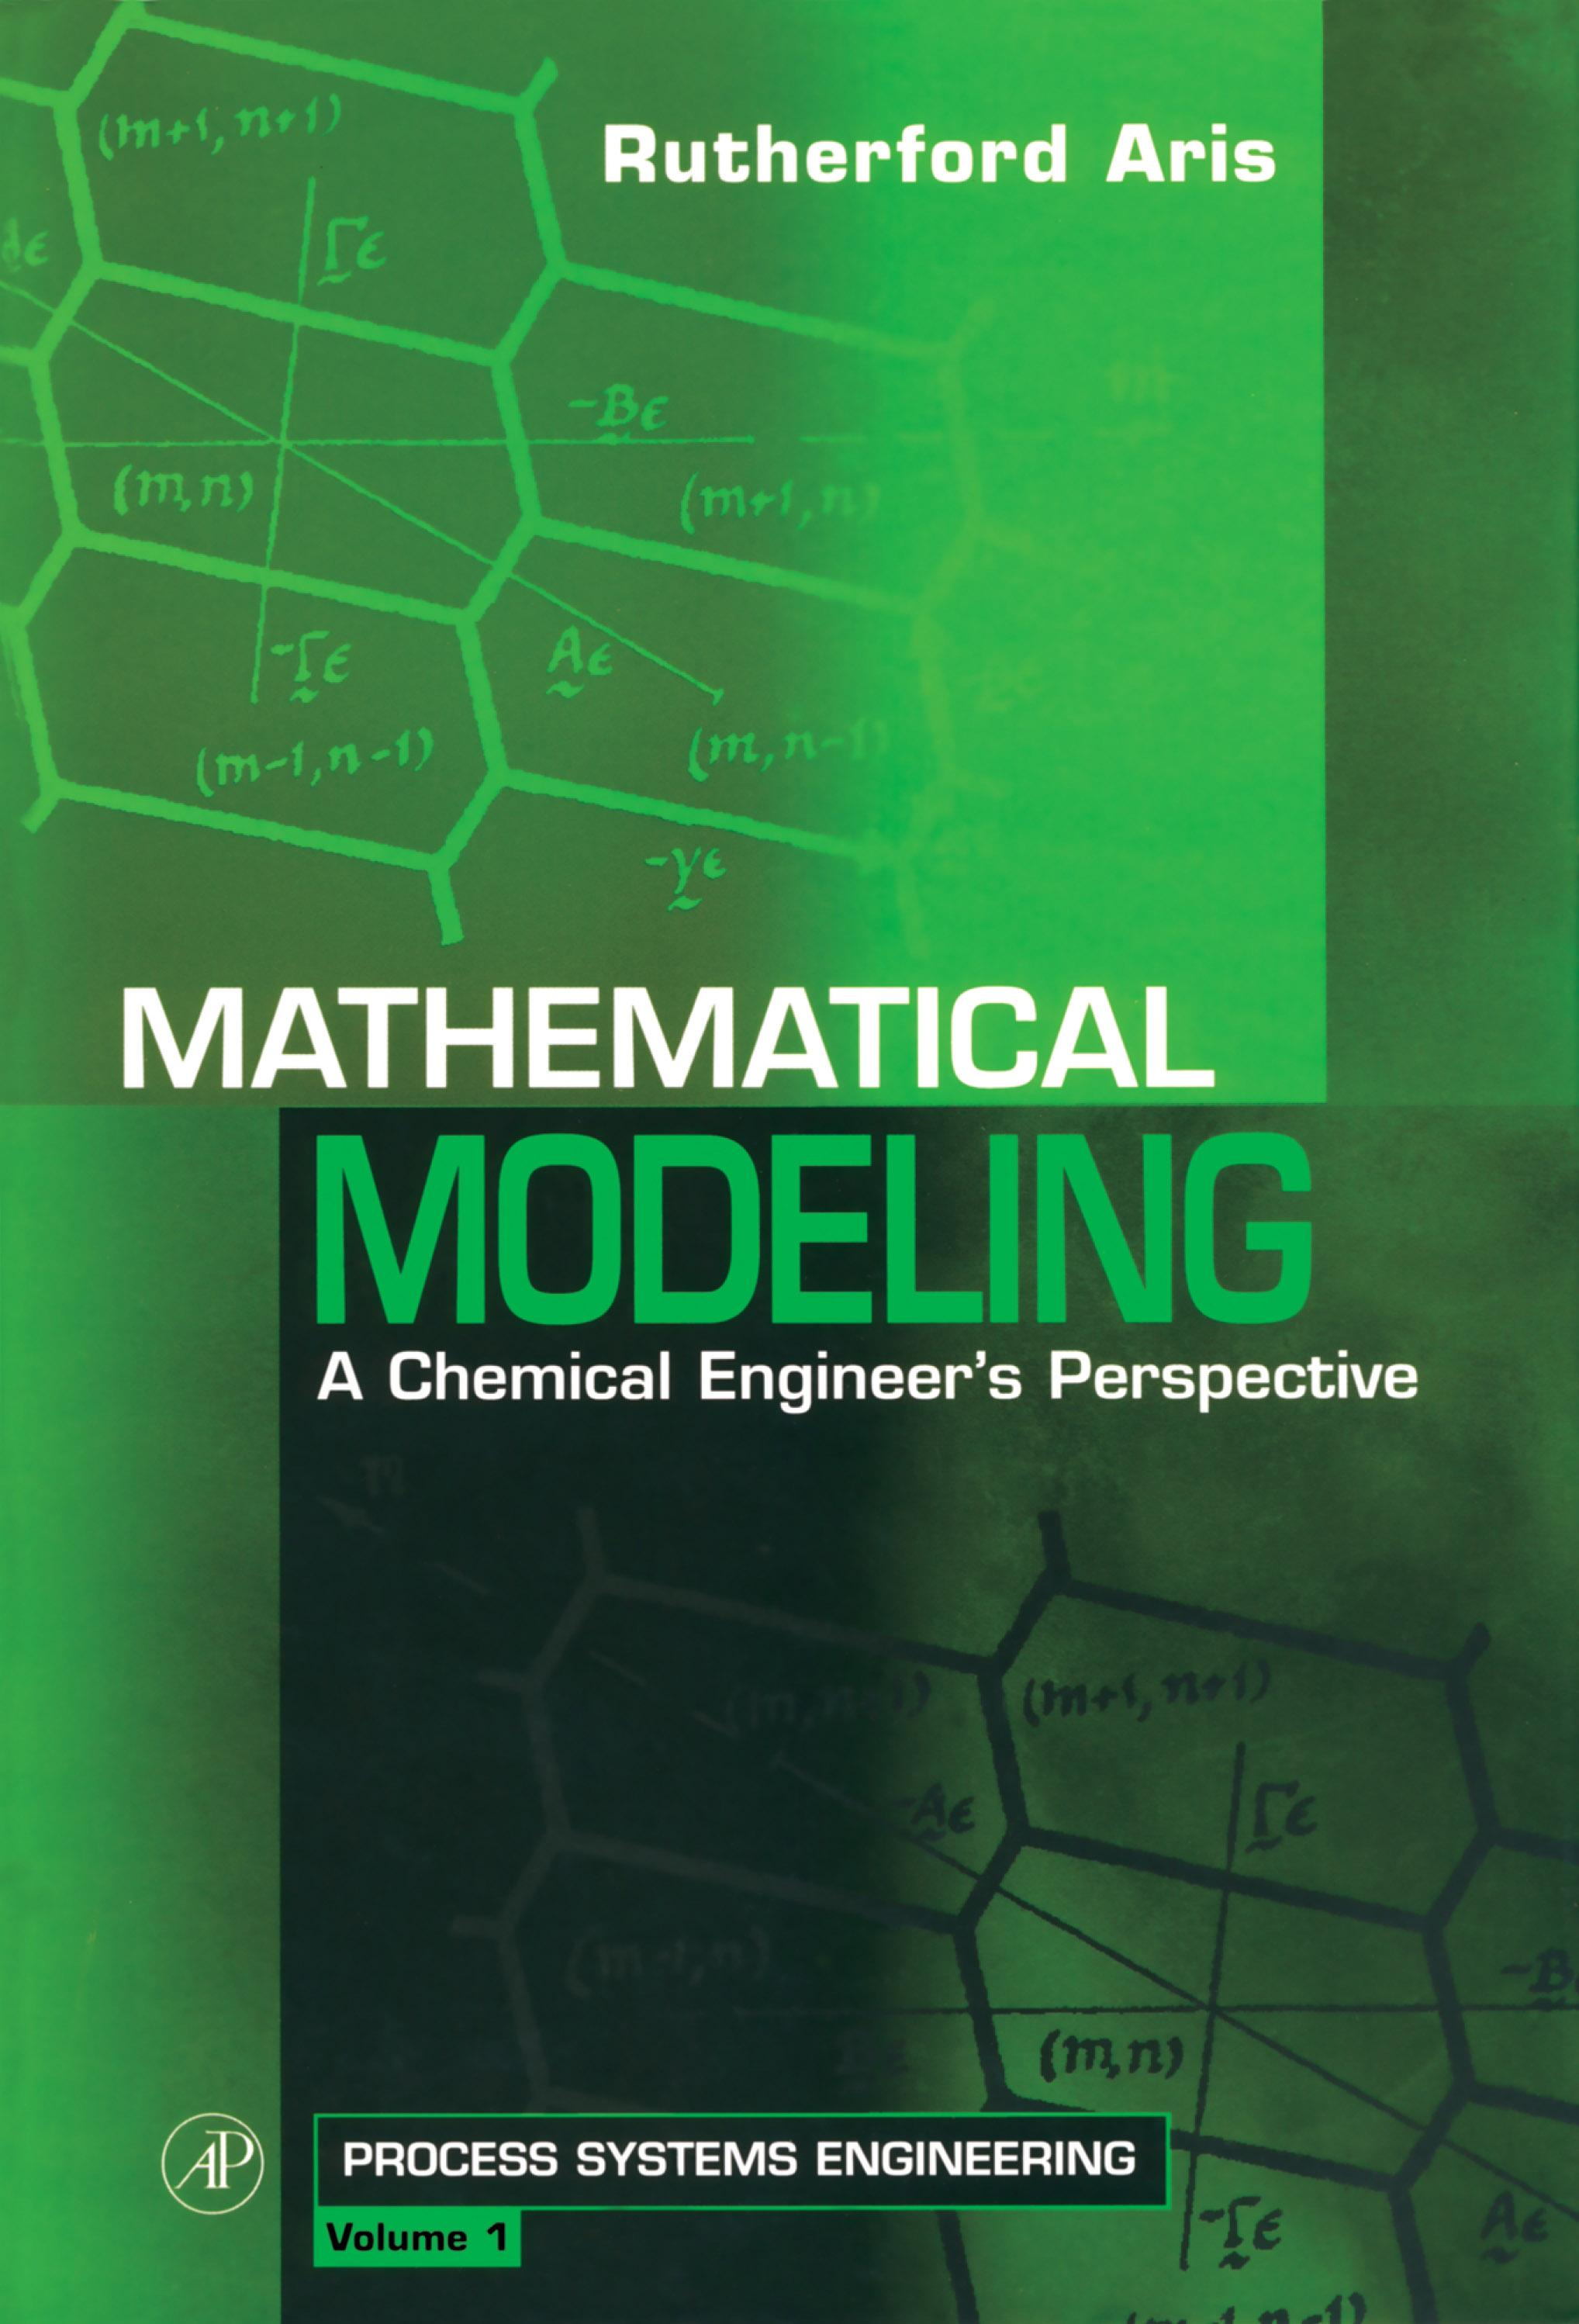 Mathematical Modeling: A Chemical Engineer's Perspective